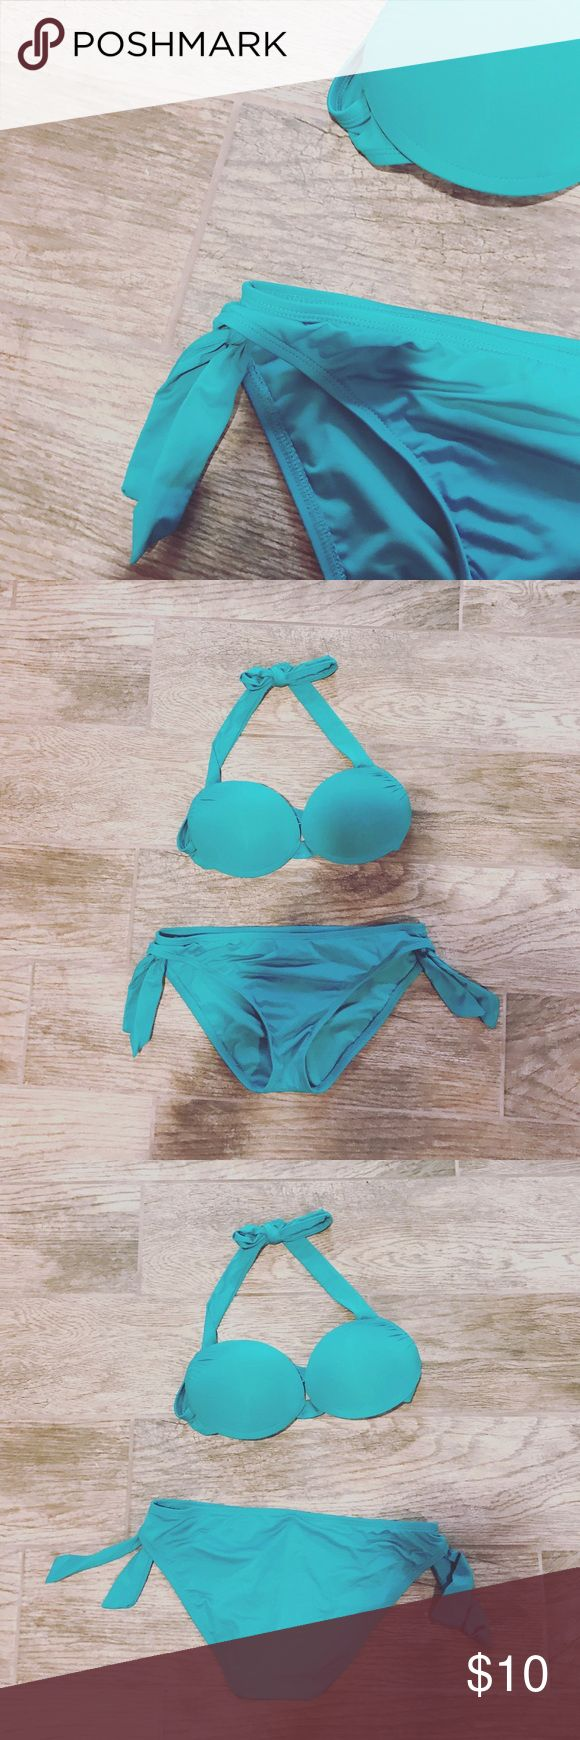 Mossimo Padded Teal Bikini Used in perfect condition!  -Ties at the neck -Extra padding for lift -Shell: 90% Nylon 10% Spandex -Lining is 100% Polyester -Top and bottom are both small petite  ⚜️NO TRADES ⚜️OFFERS WELCOMED! ⚜️BUNDLE TO SAVE ⚜️FEEL FREE TO ASK ANY QUESTIONS! Mossimo Swim Bikinis